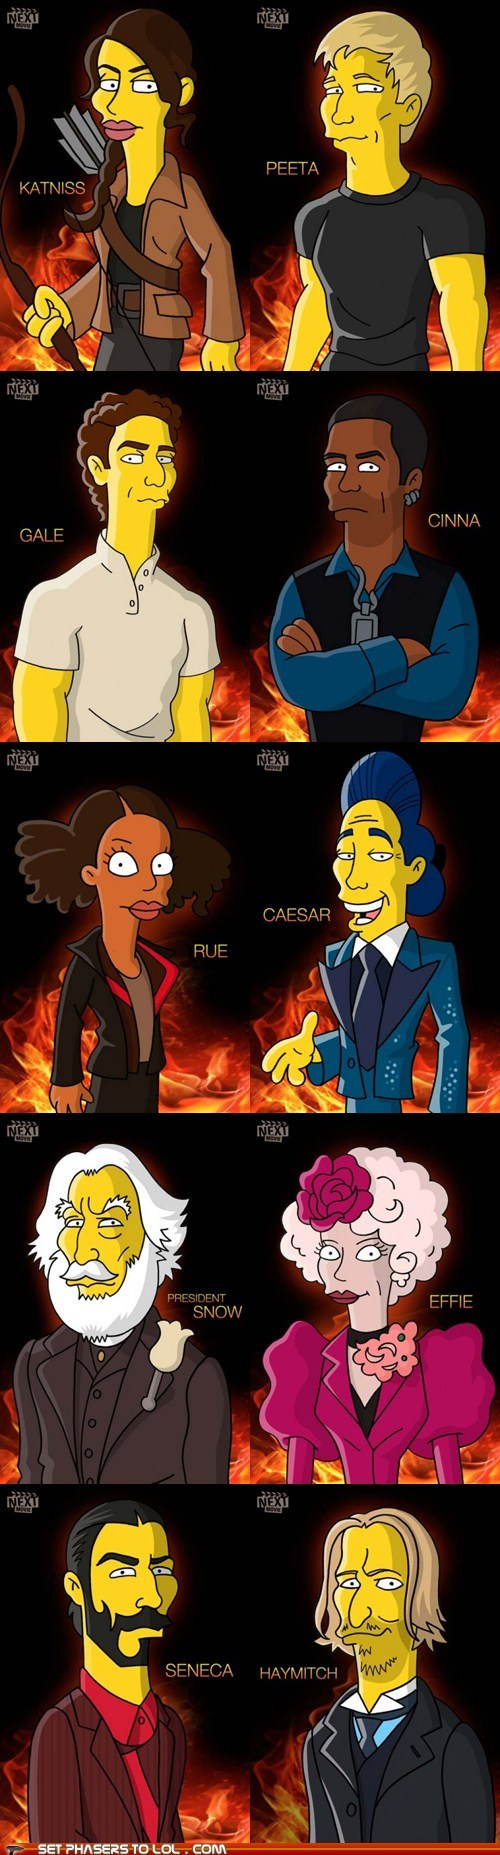 The Hunger Games Characters as Simpsons